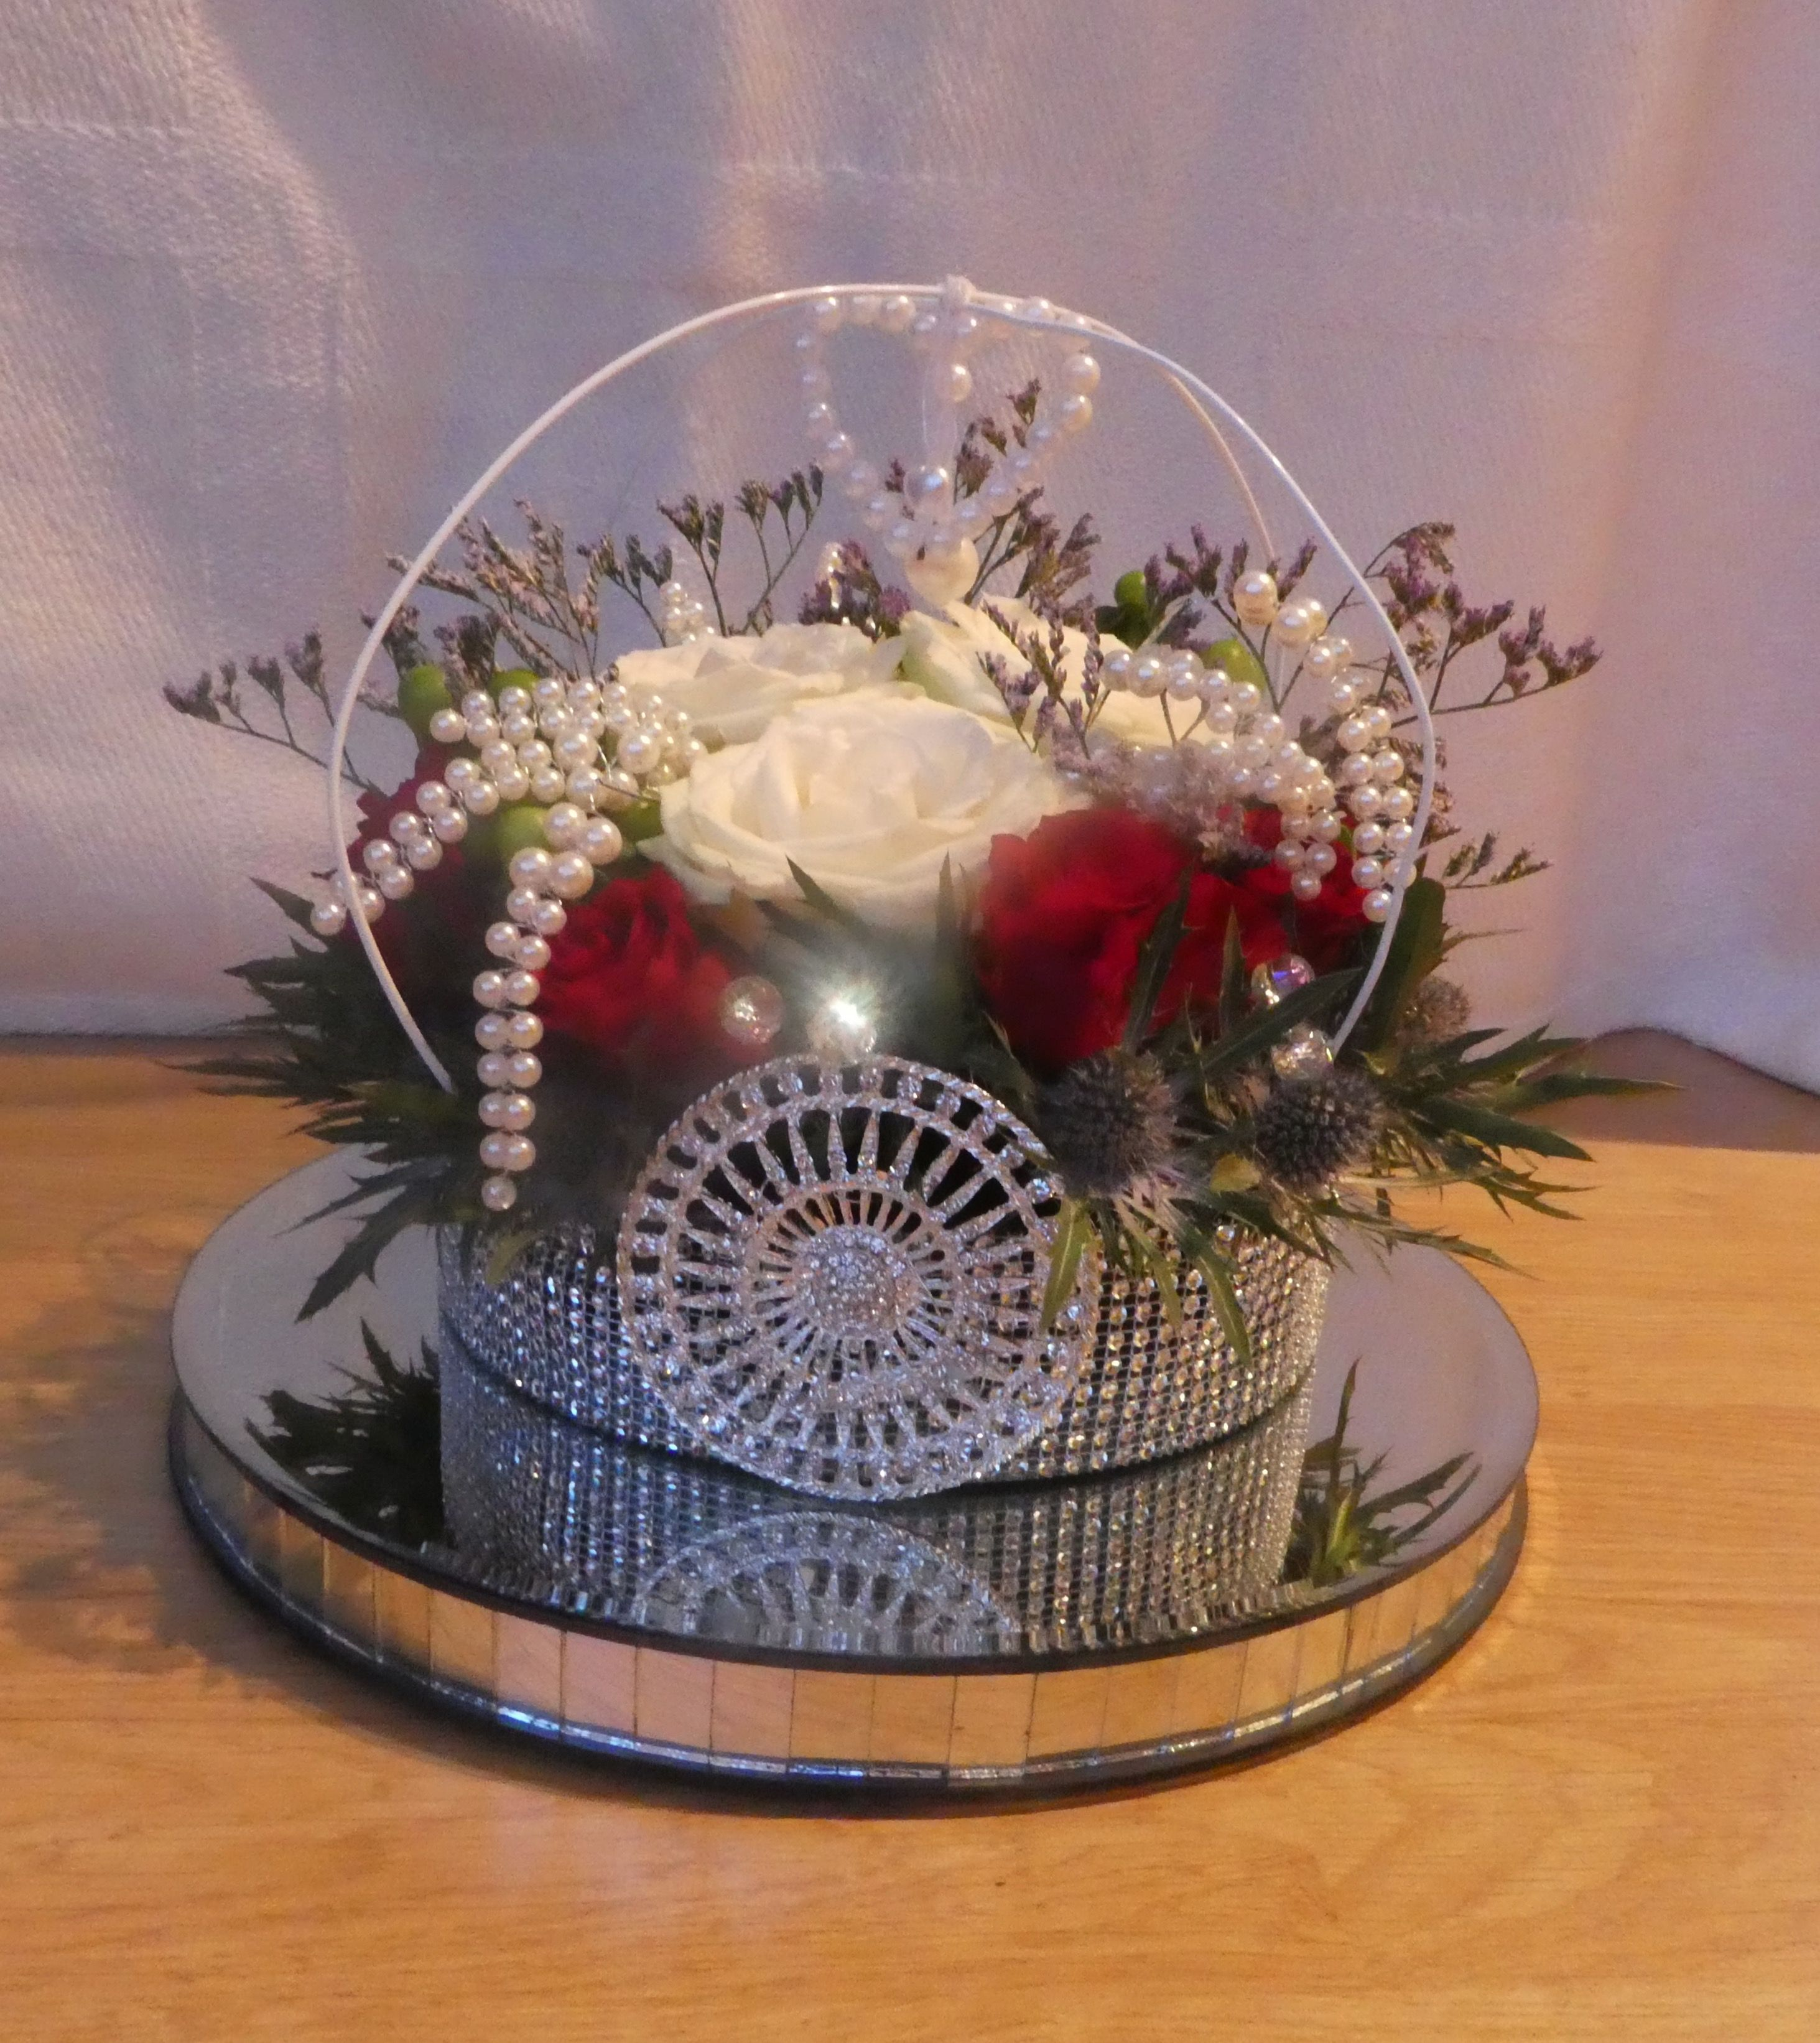 Flower Arrangement For The Queens 90th Birthday Crown With